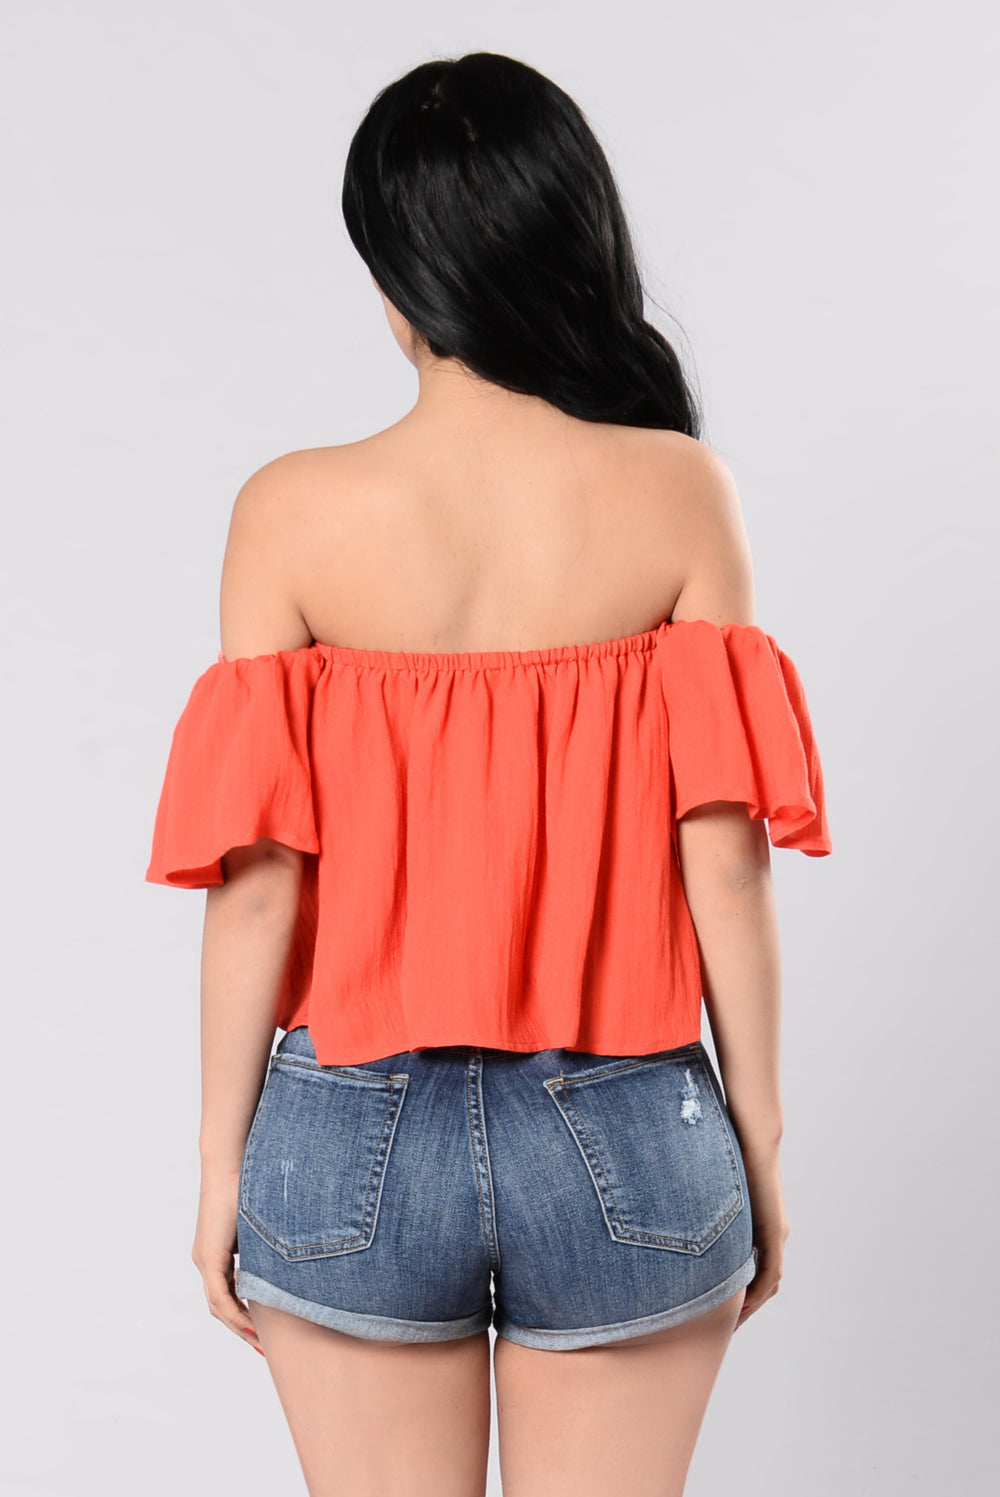 Jaymes Top - Orange